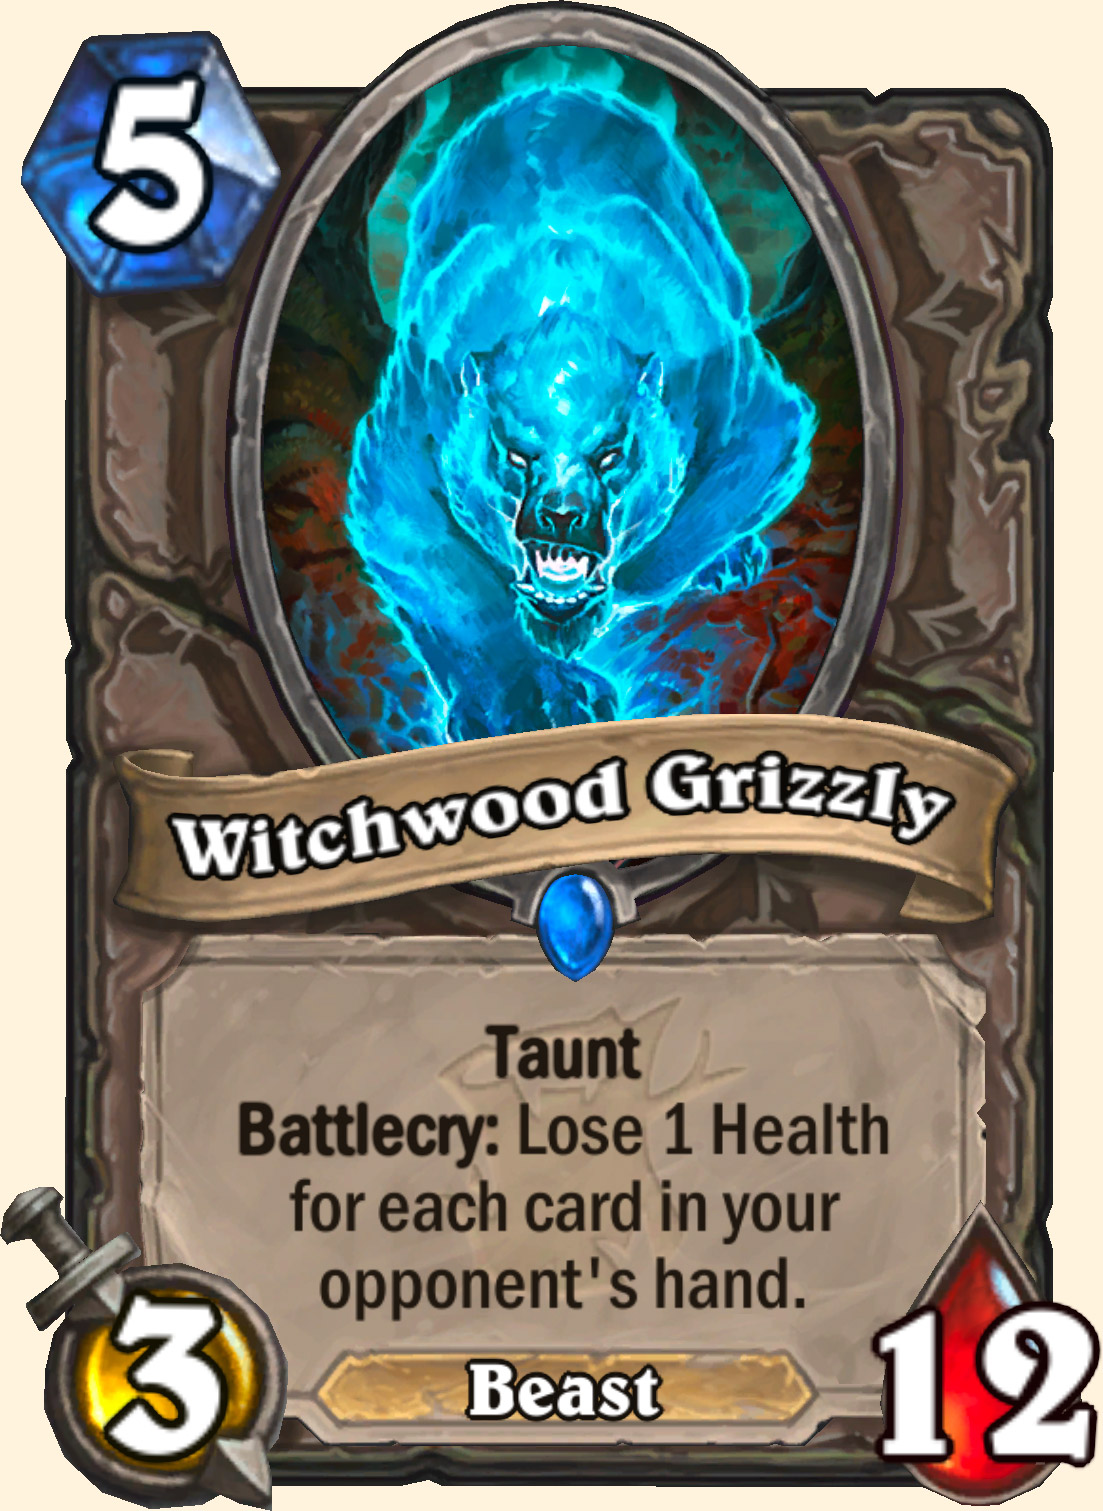 witchwood-grizzly-hearthstone-card.jpg